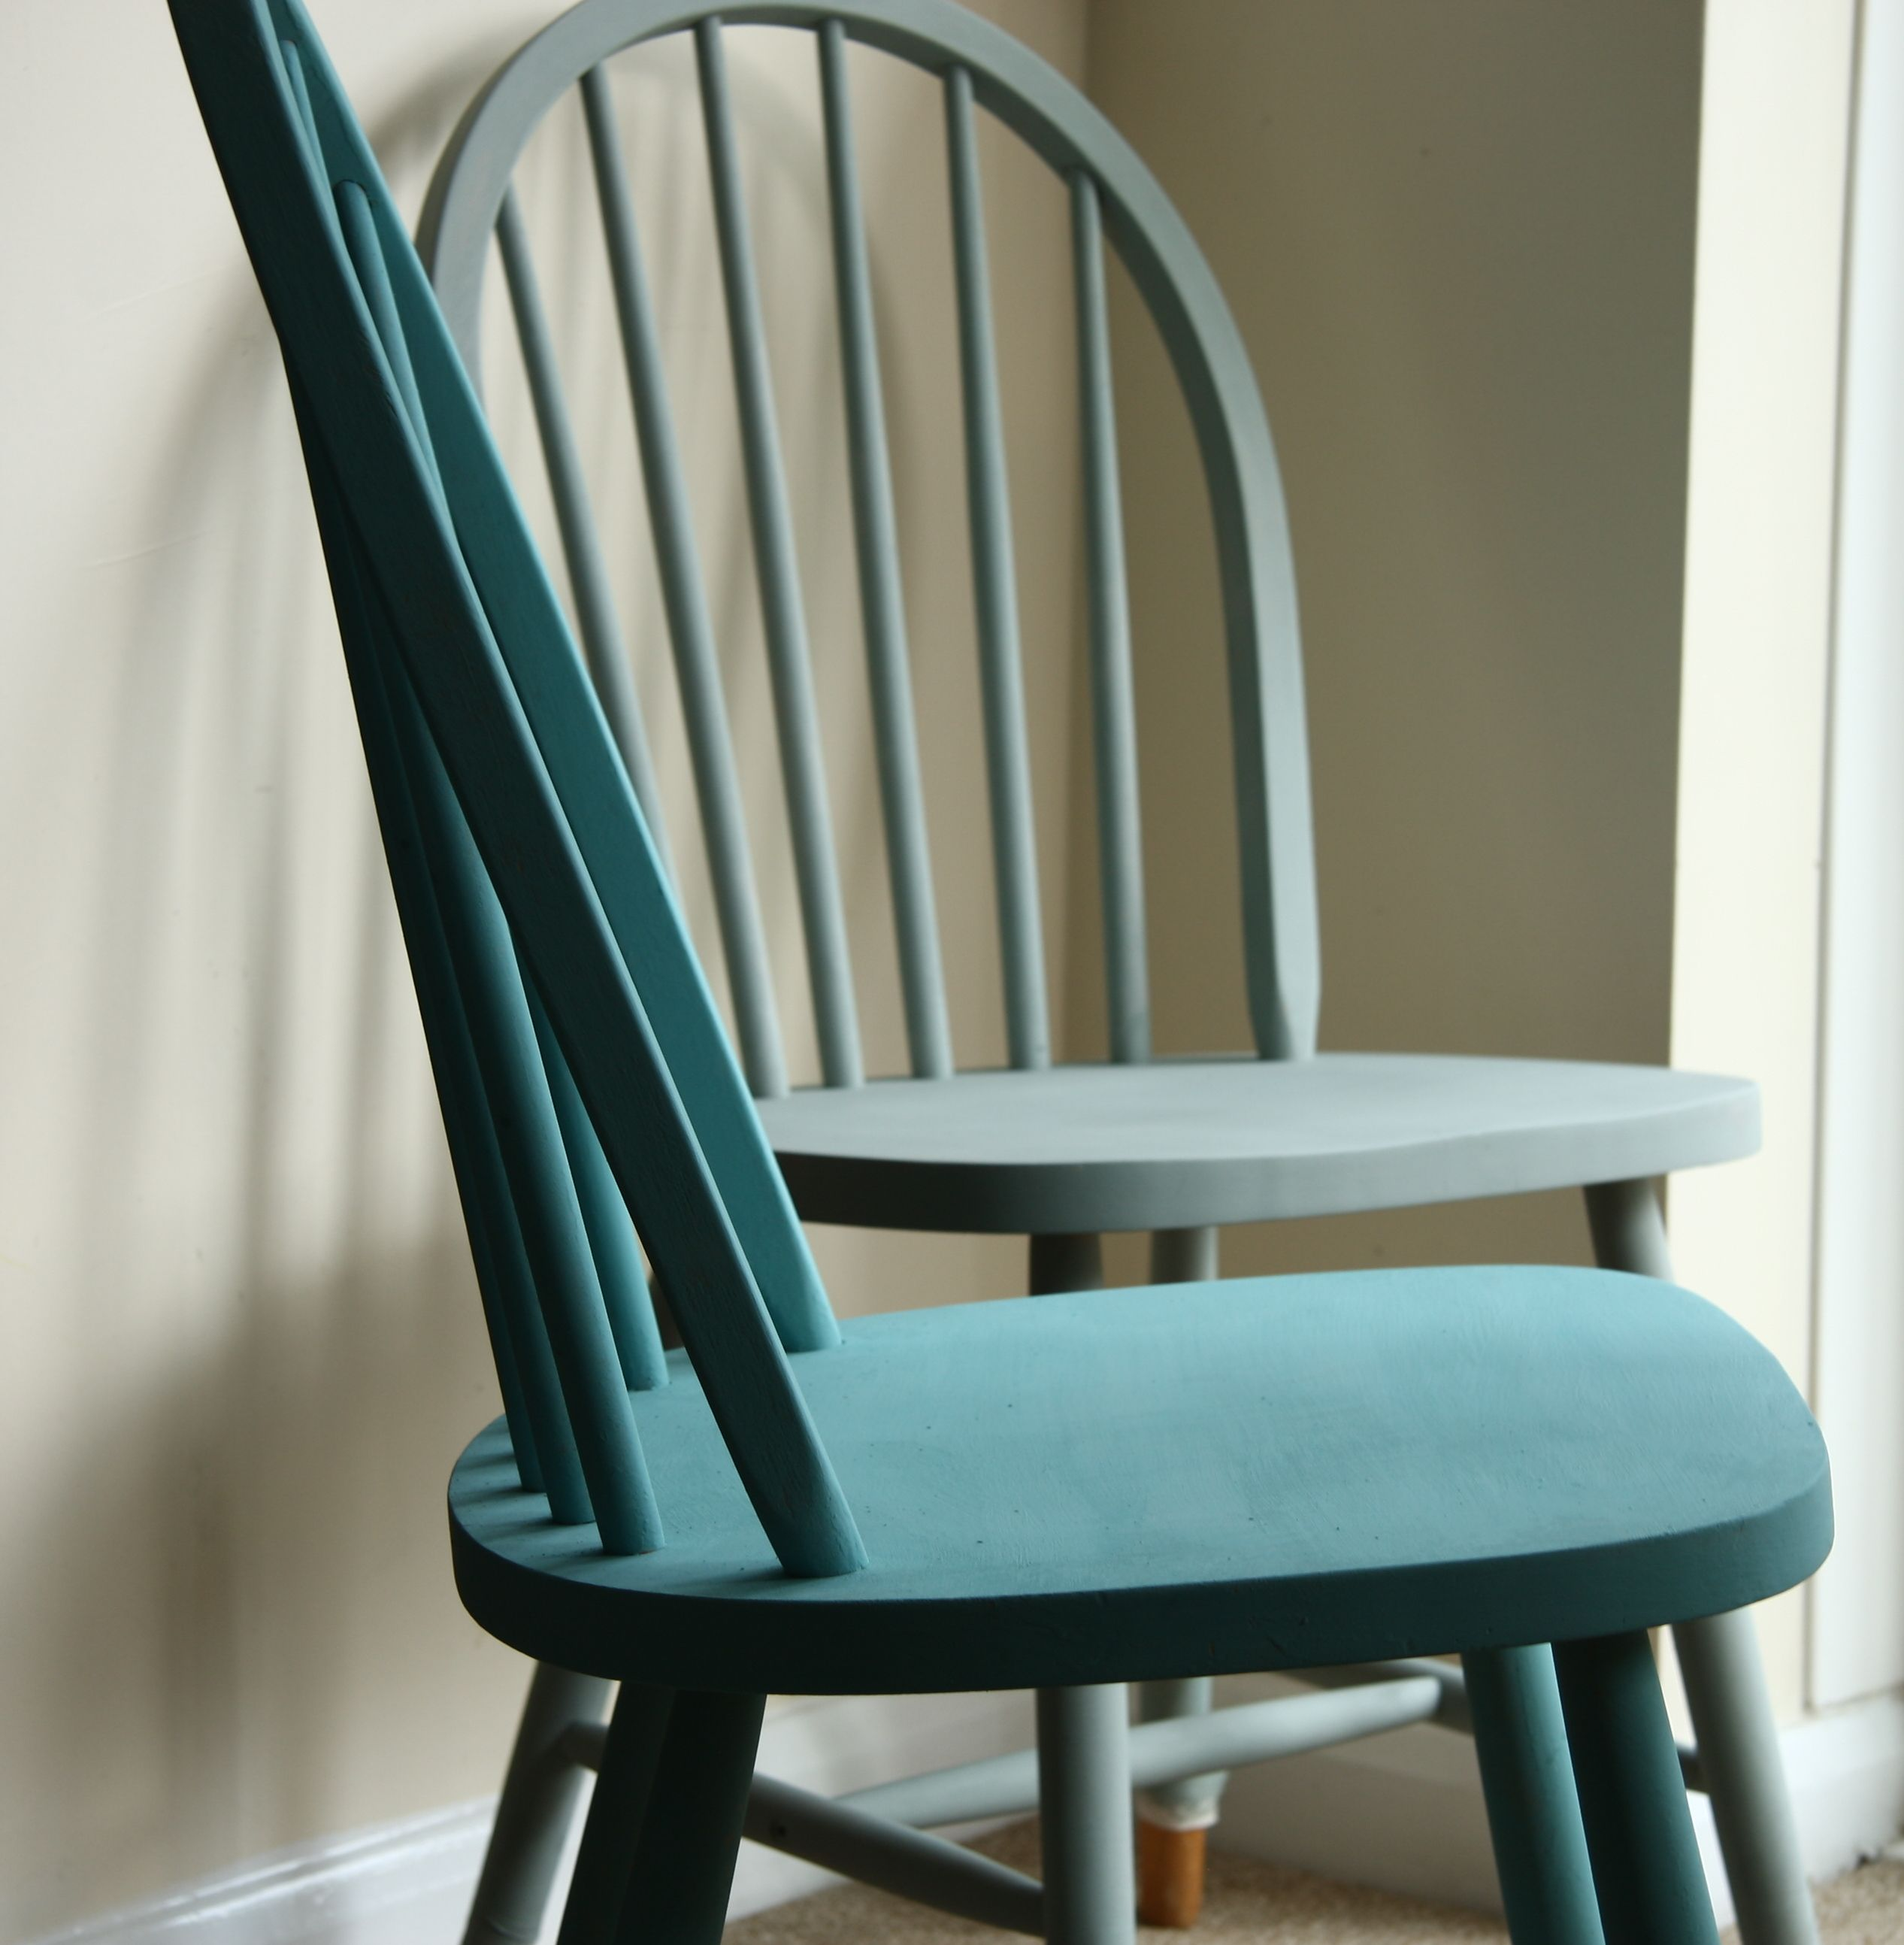 painted kitchen chairs supplies stores ercol in duck egg and provence blue